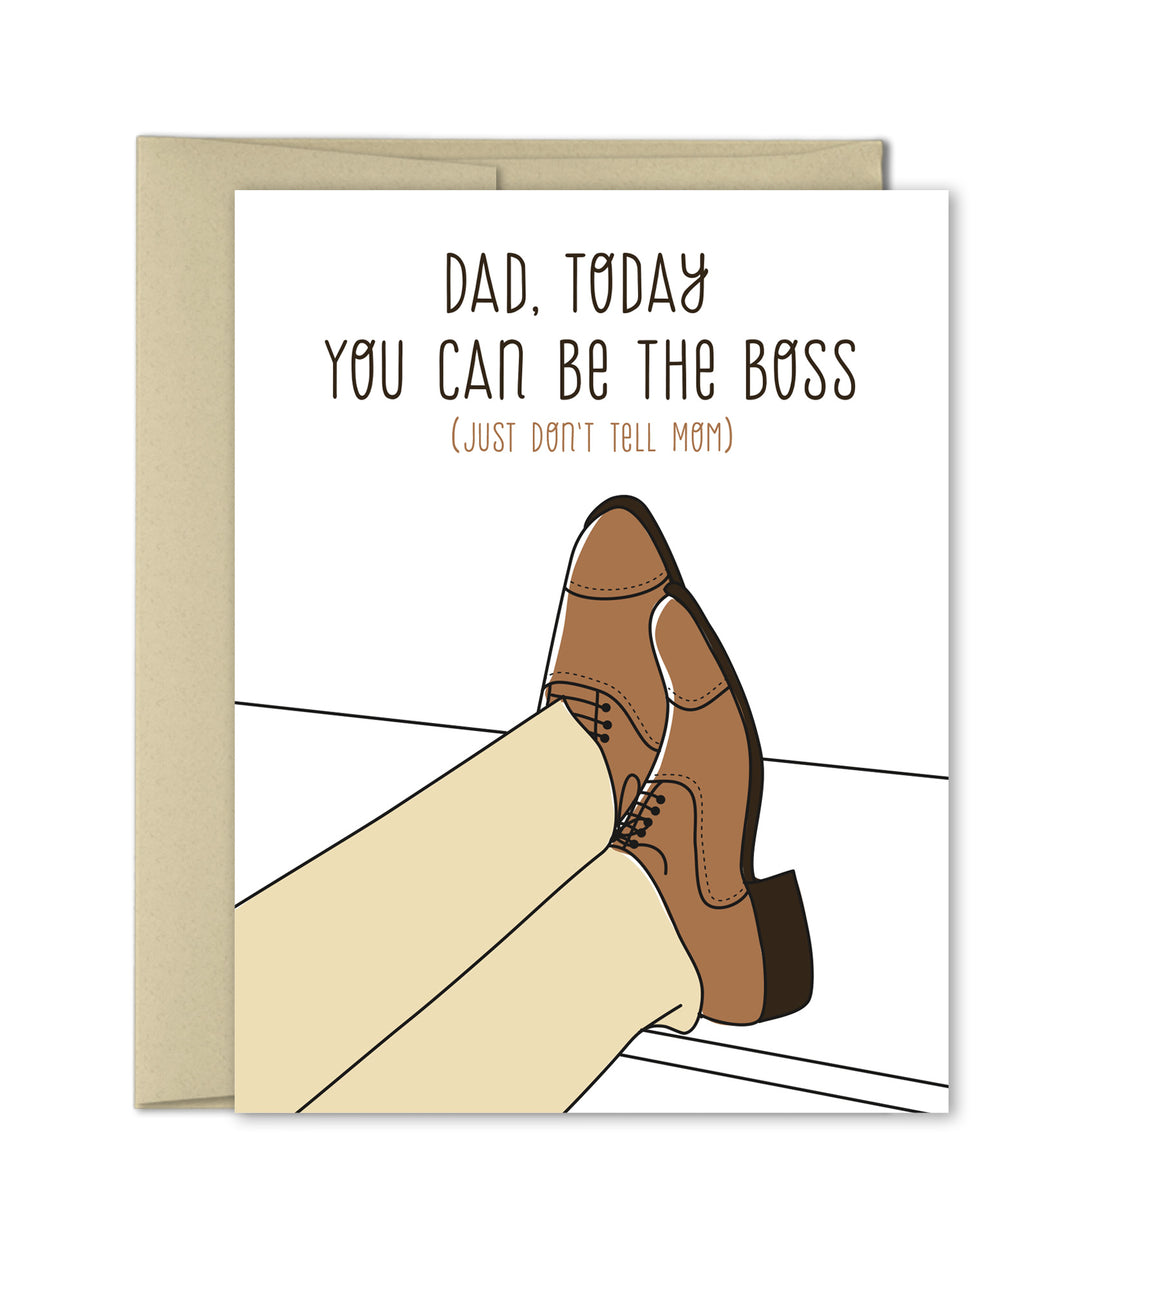 Father's Day Card - Funny cards for dad - Dad, today you can be the boss! - The Imagination Spot